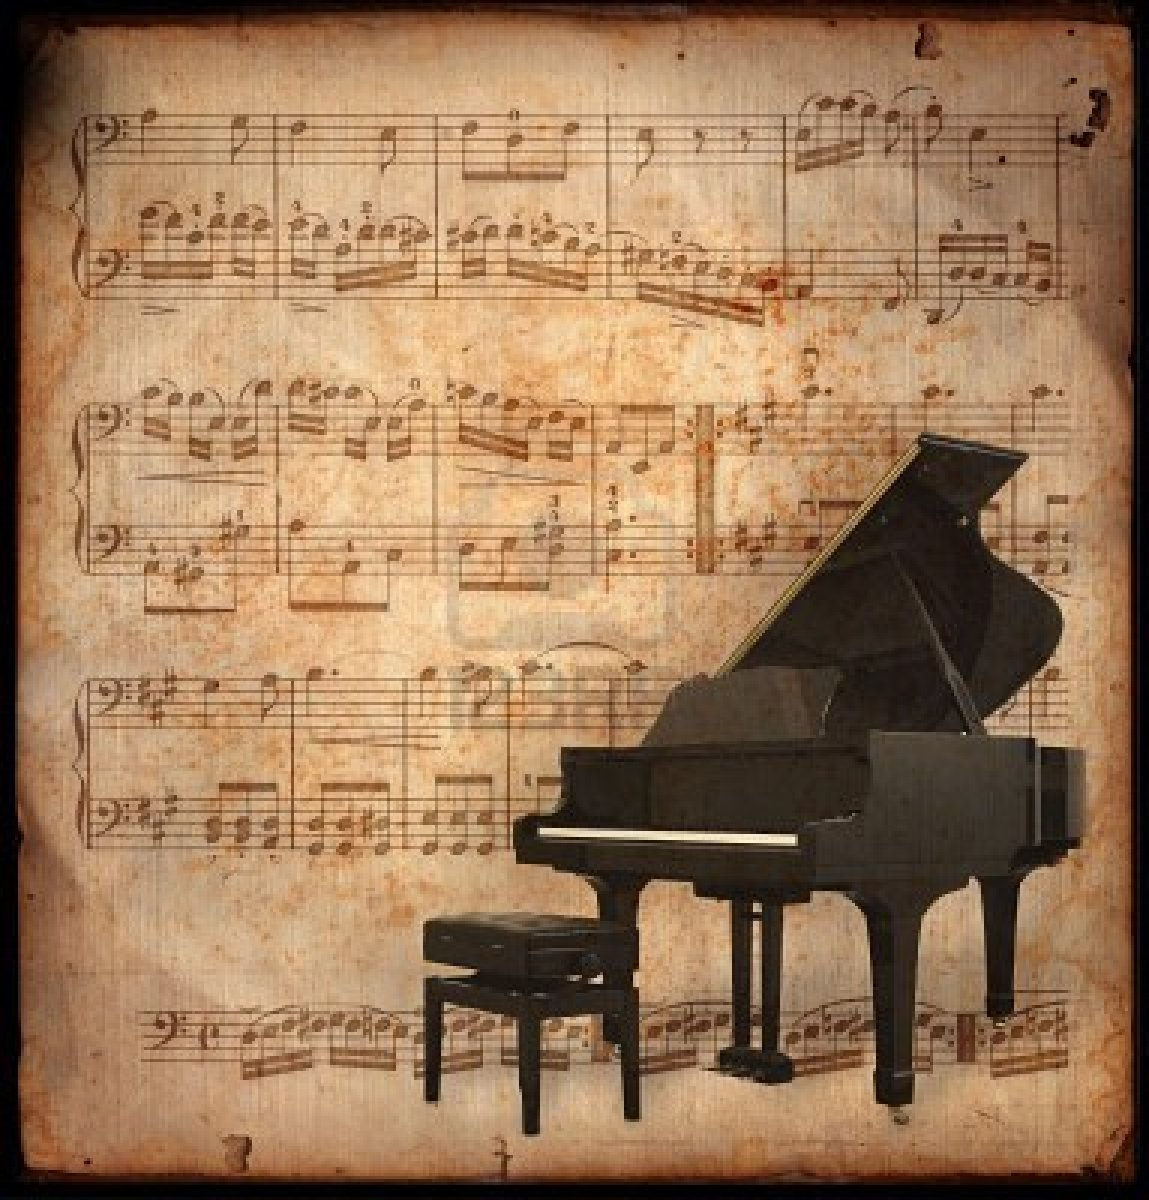 Piano Music Wallpaper